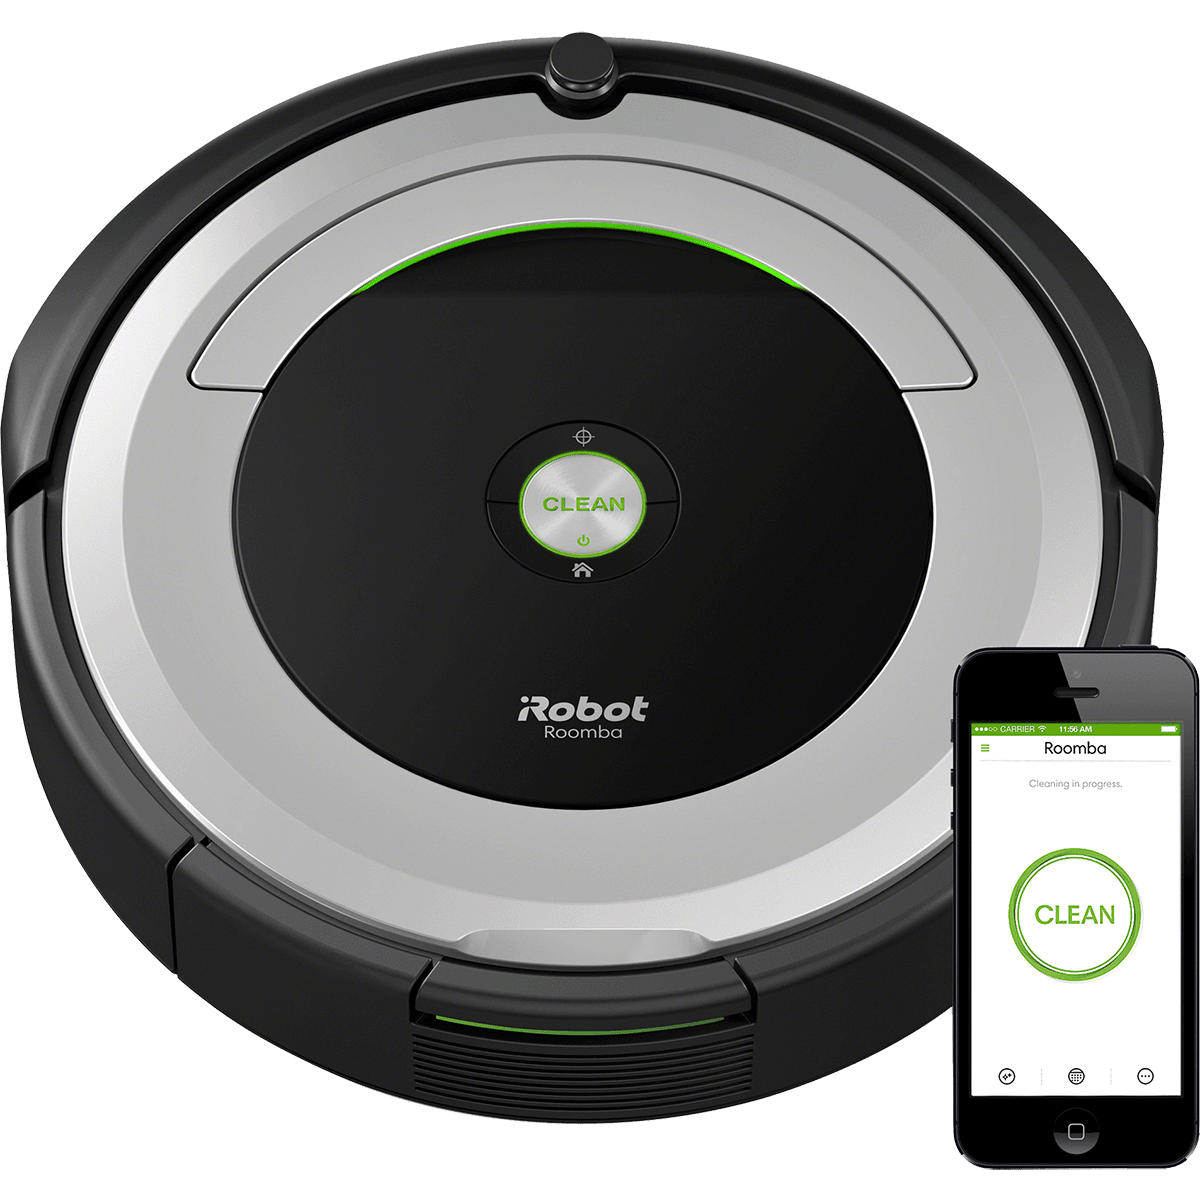 Irobot Roomba 690 Wifi Connected Robot Vacuum Sylvane